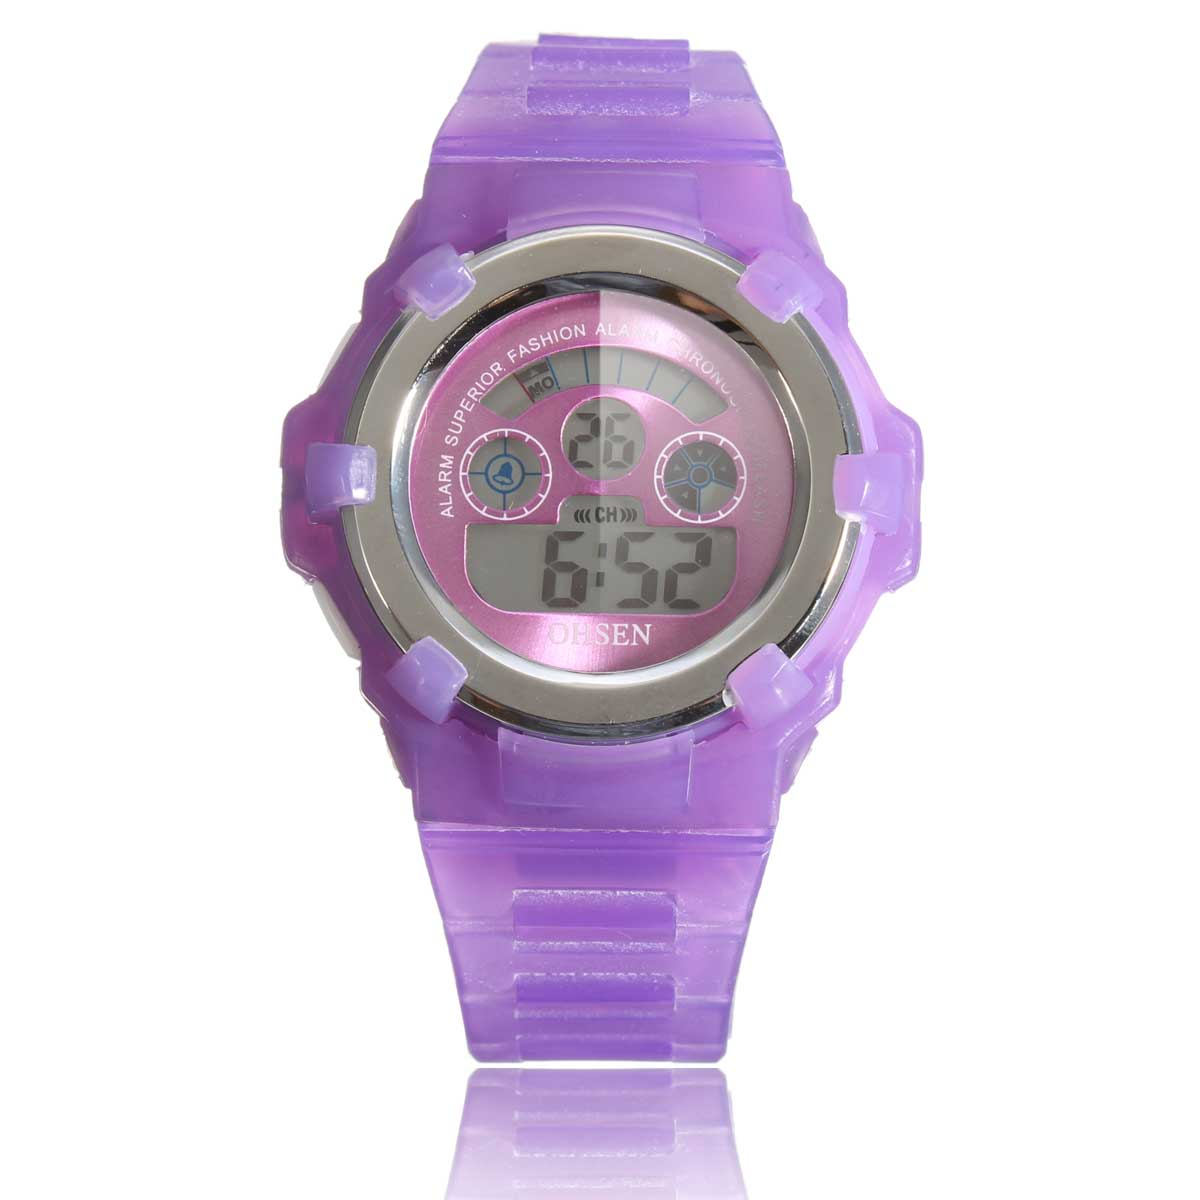 OHSEN Boys Girls Children Kids 7 Colors LED Back Light Digital Multifunction Military Sports Watches Jelly Silicone Wrist Watch